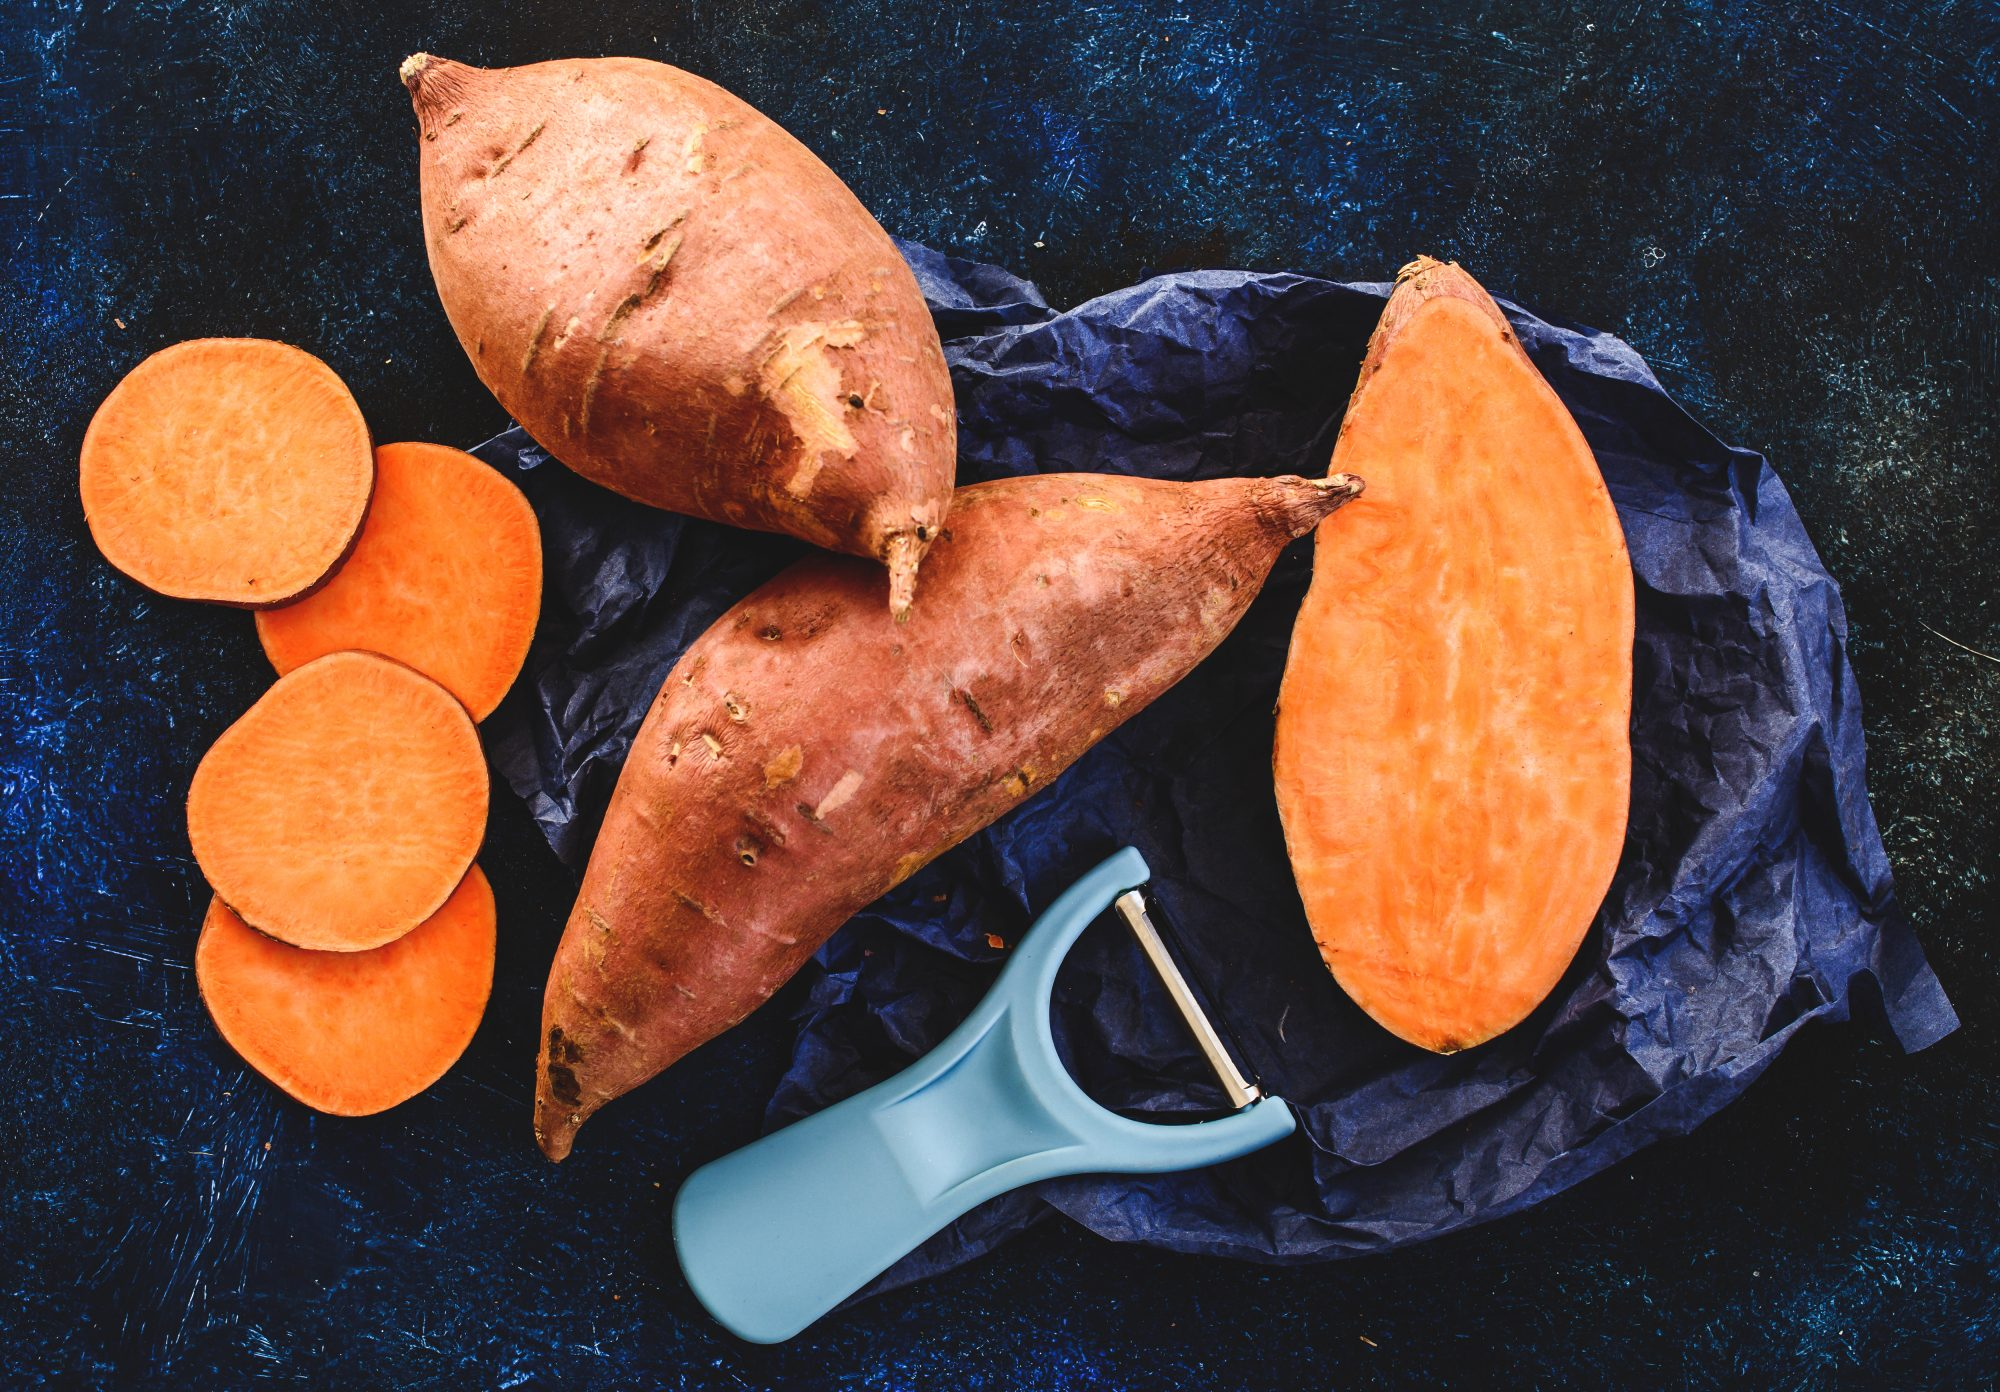 whole, halved, and sliced sweet potatoes with a peeler